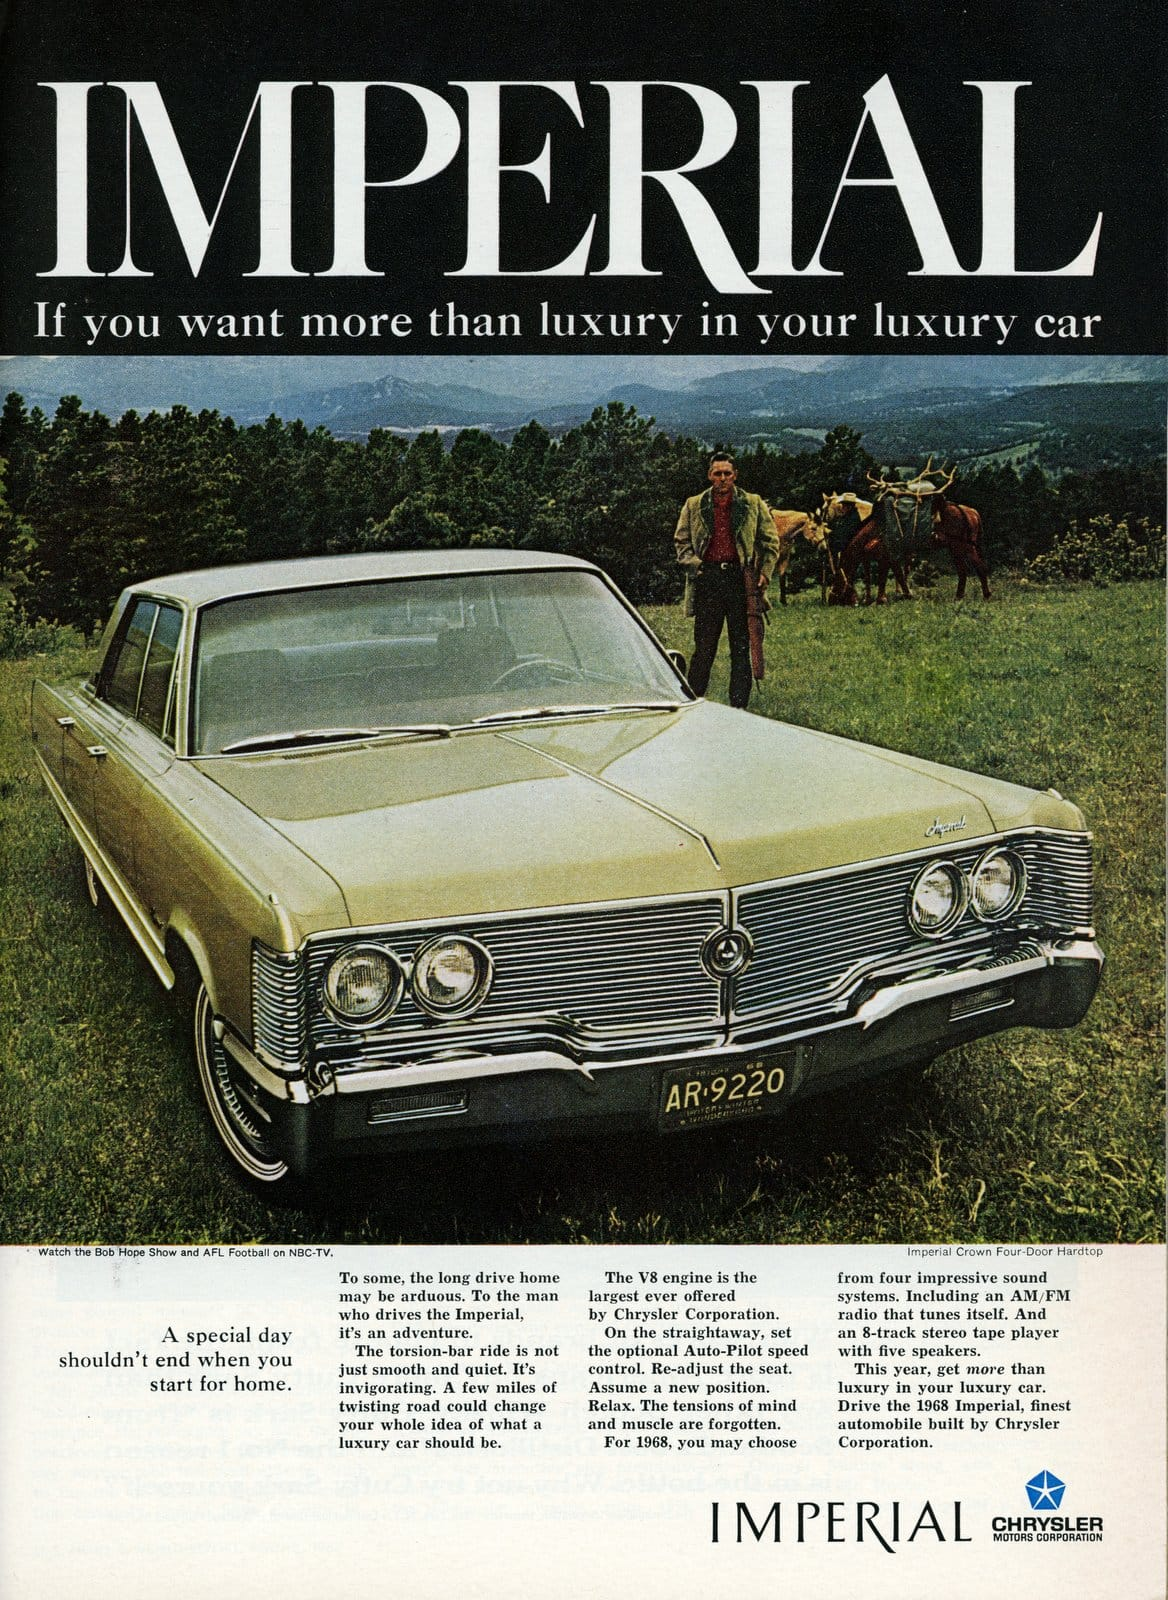 1968 Chrysler Imperial - vintage classic car ad (8)